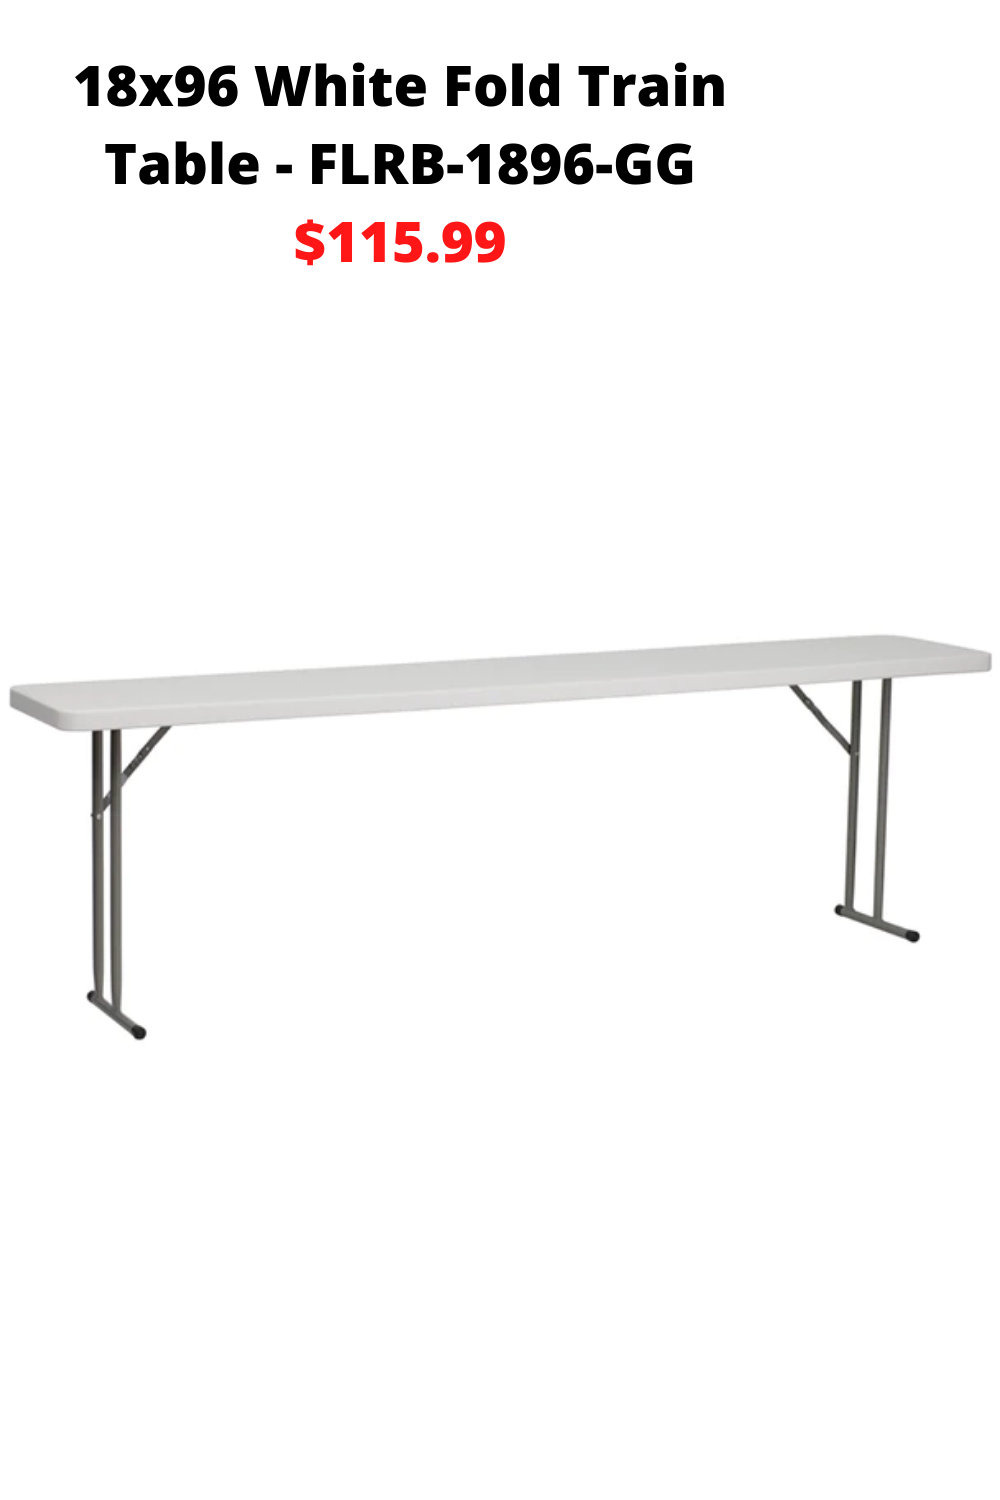 18x96 White Fold Train Table Flrb 1896 Gg 115 99 In 2020 Training Tables Table Train Table